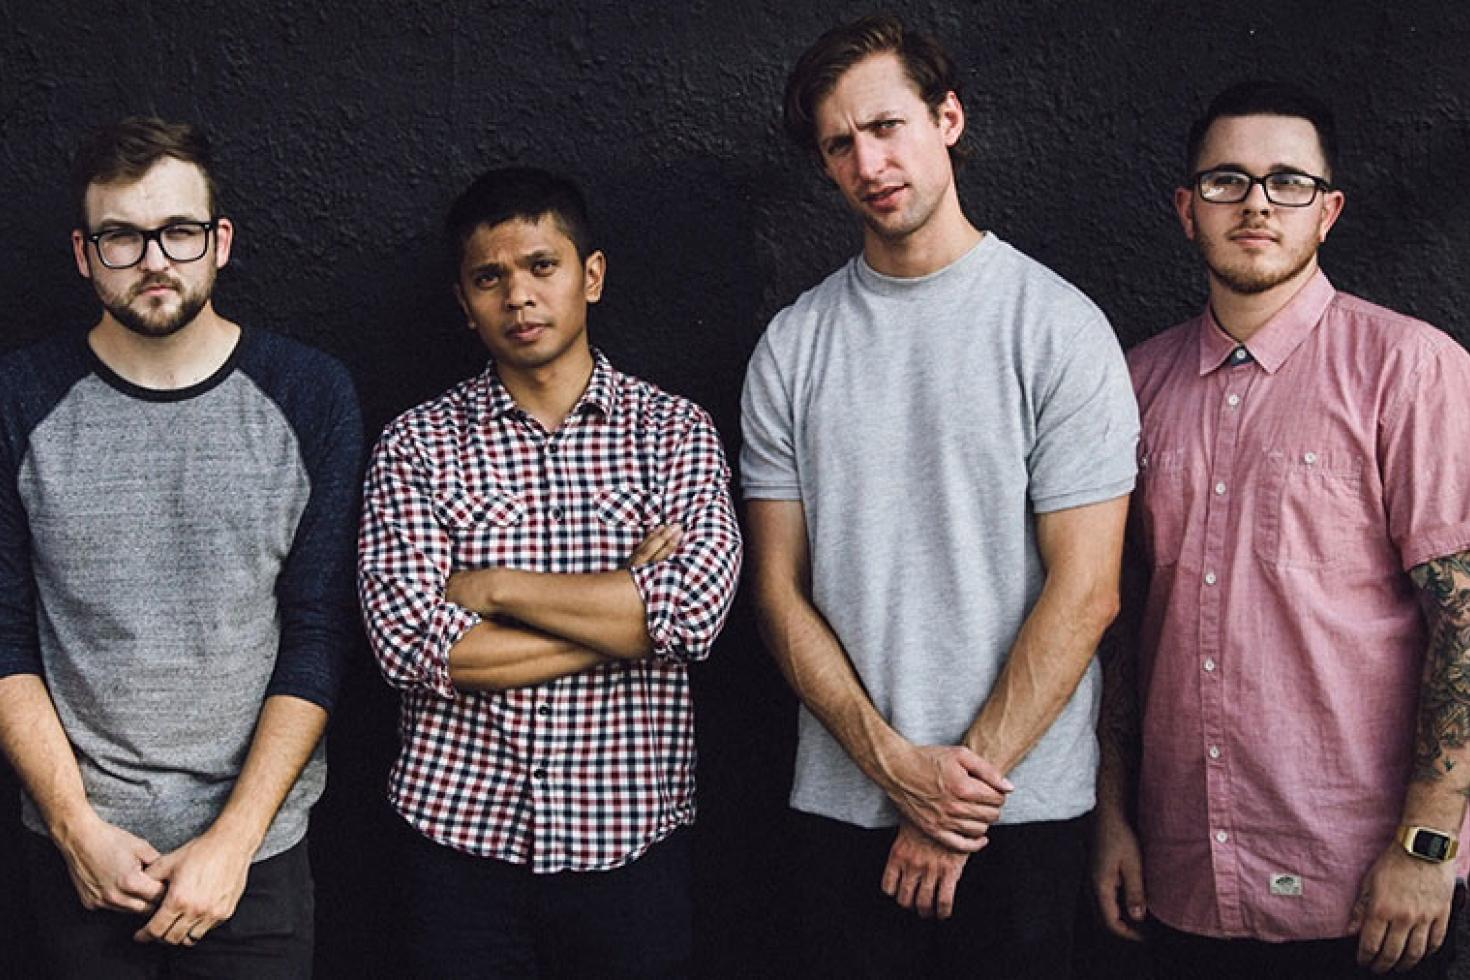 Gardenside release new song 'My Bad' and announce signing to Common Ground Records